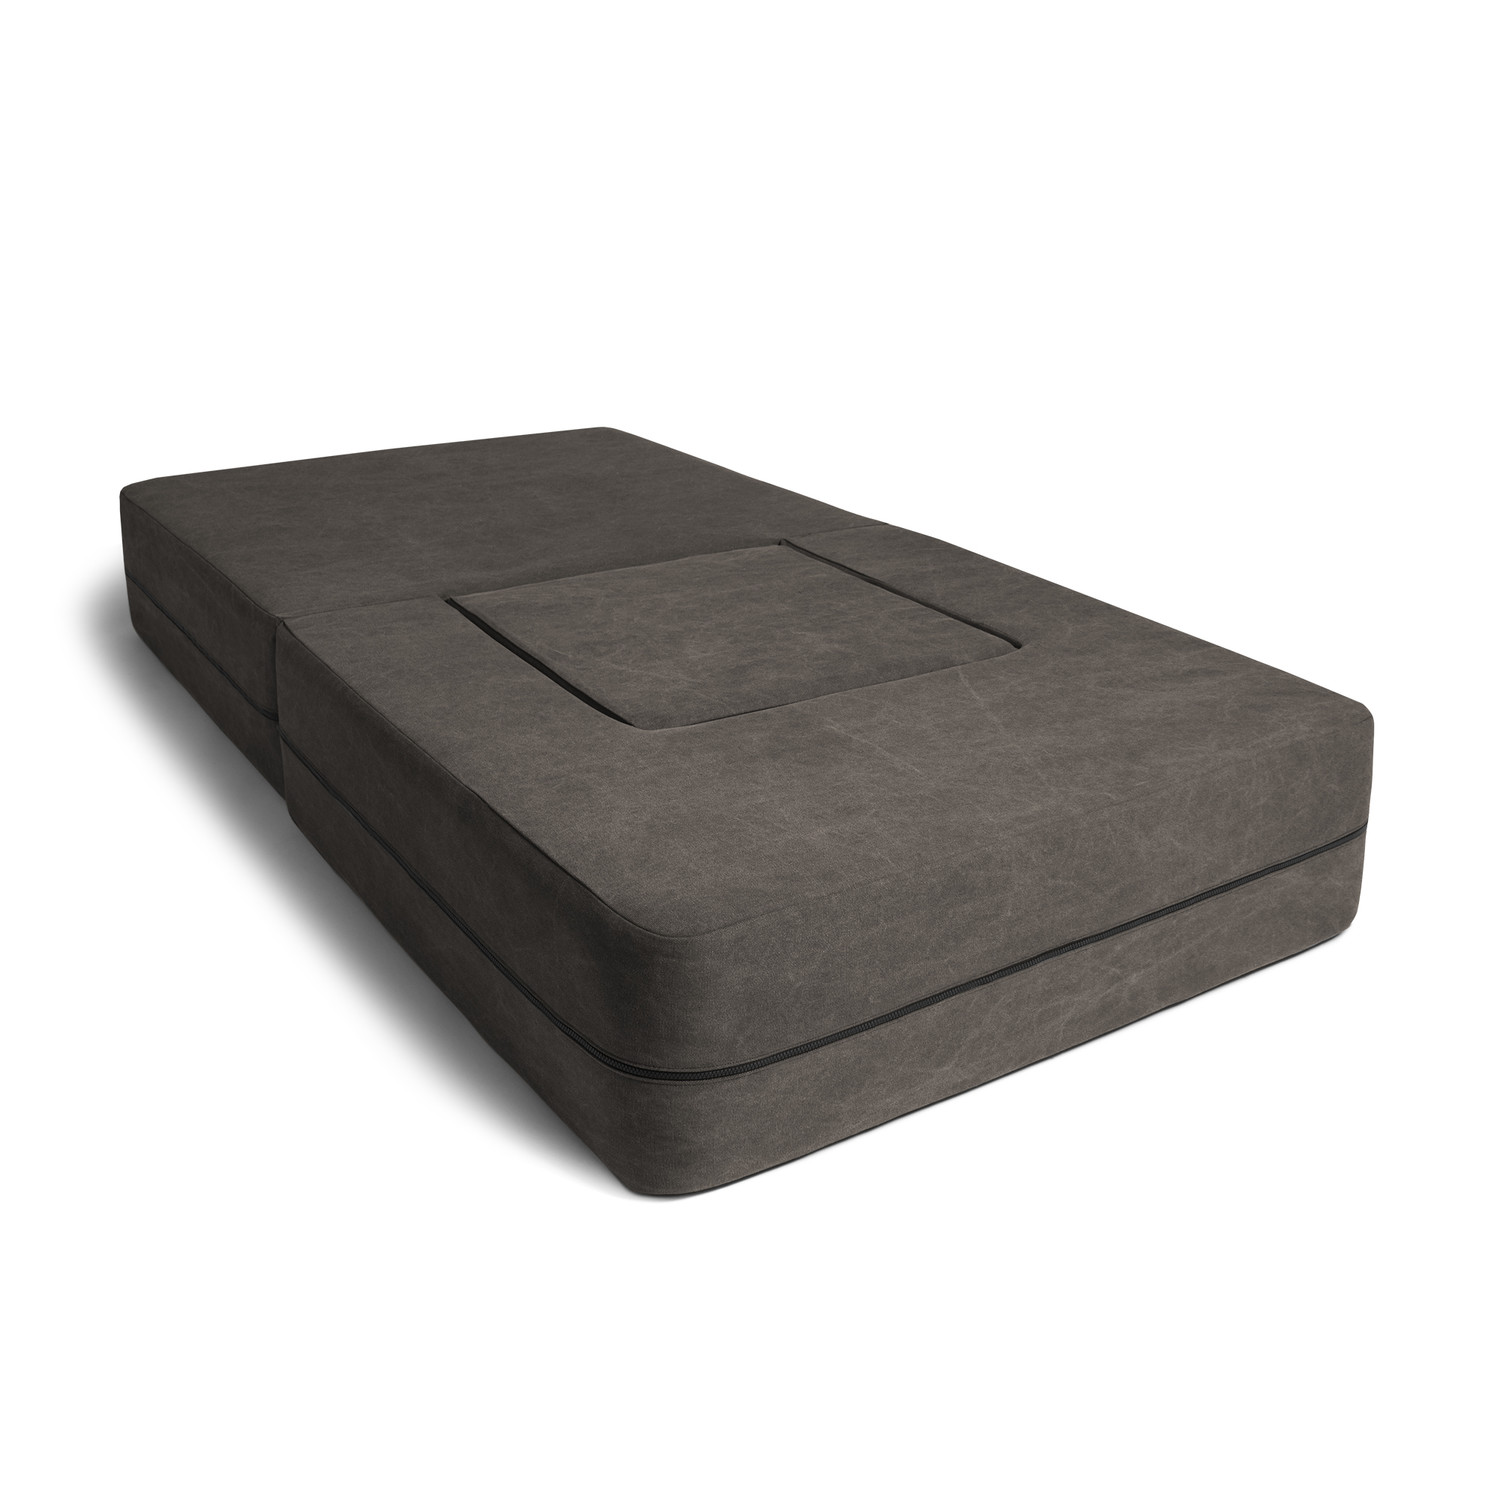 Convertible Ottoman Chair Costco: Convertible Sleeper // Chair + Ottoman (Green)